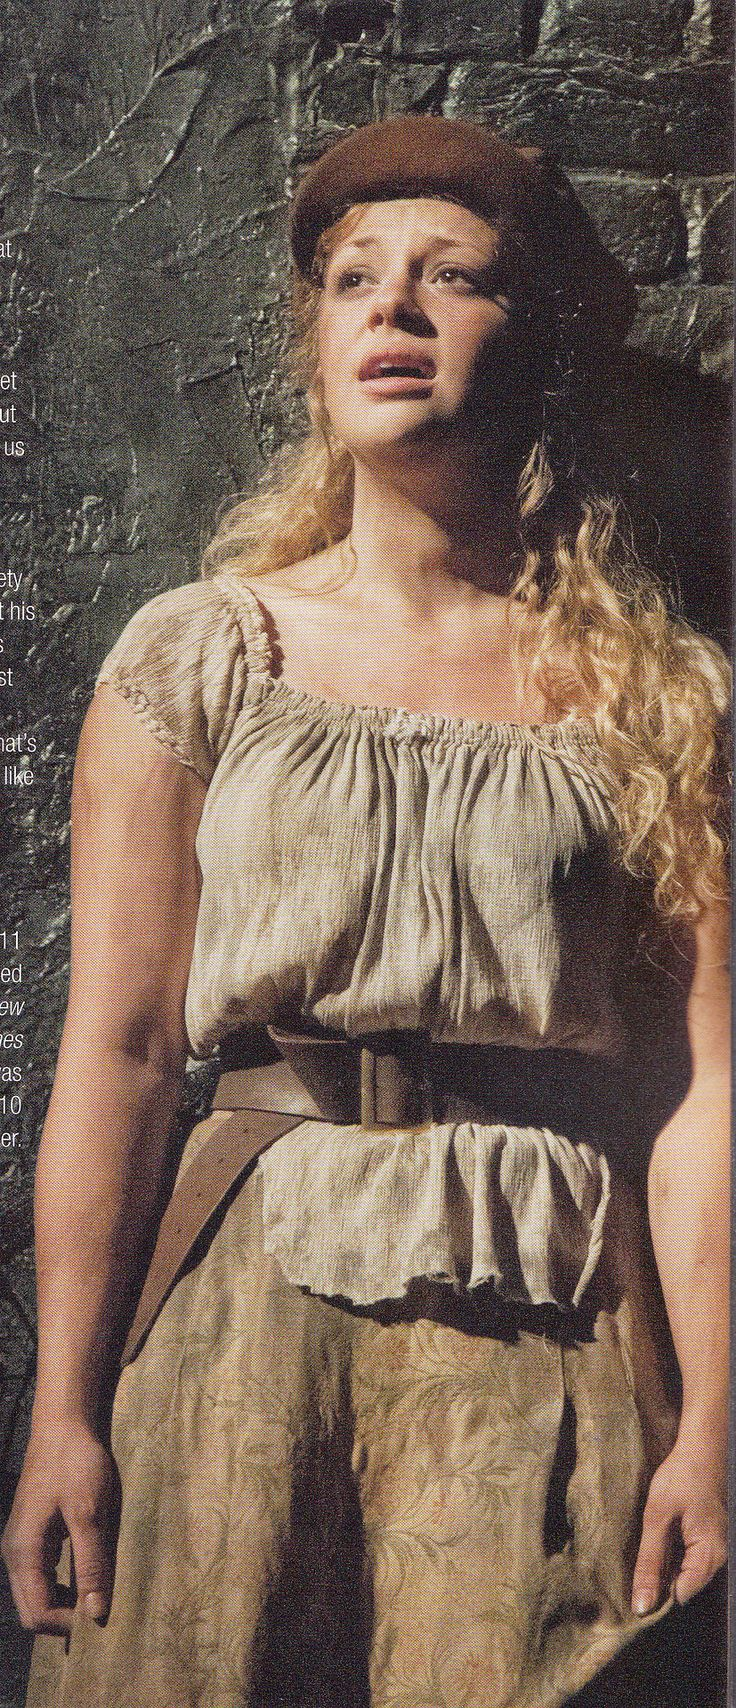 Carrie Hope Fletcher as Eponine, 2013-14 West End Cast. Amazing performance!